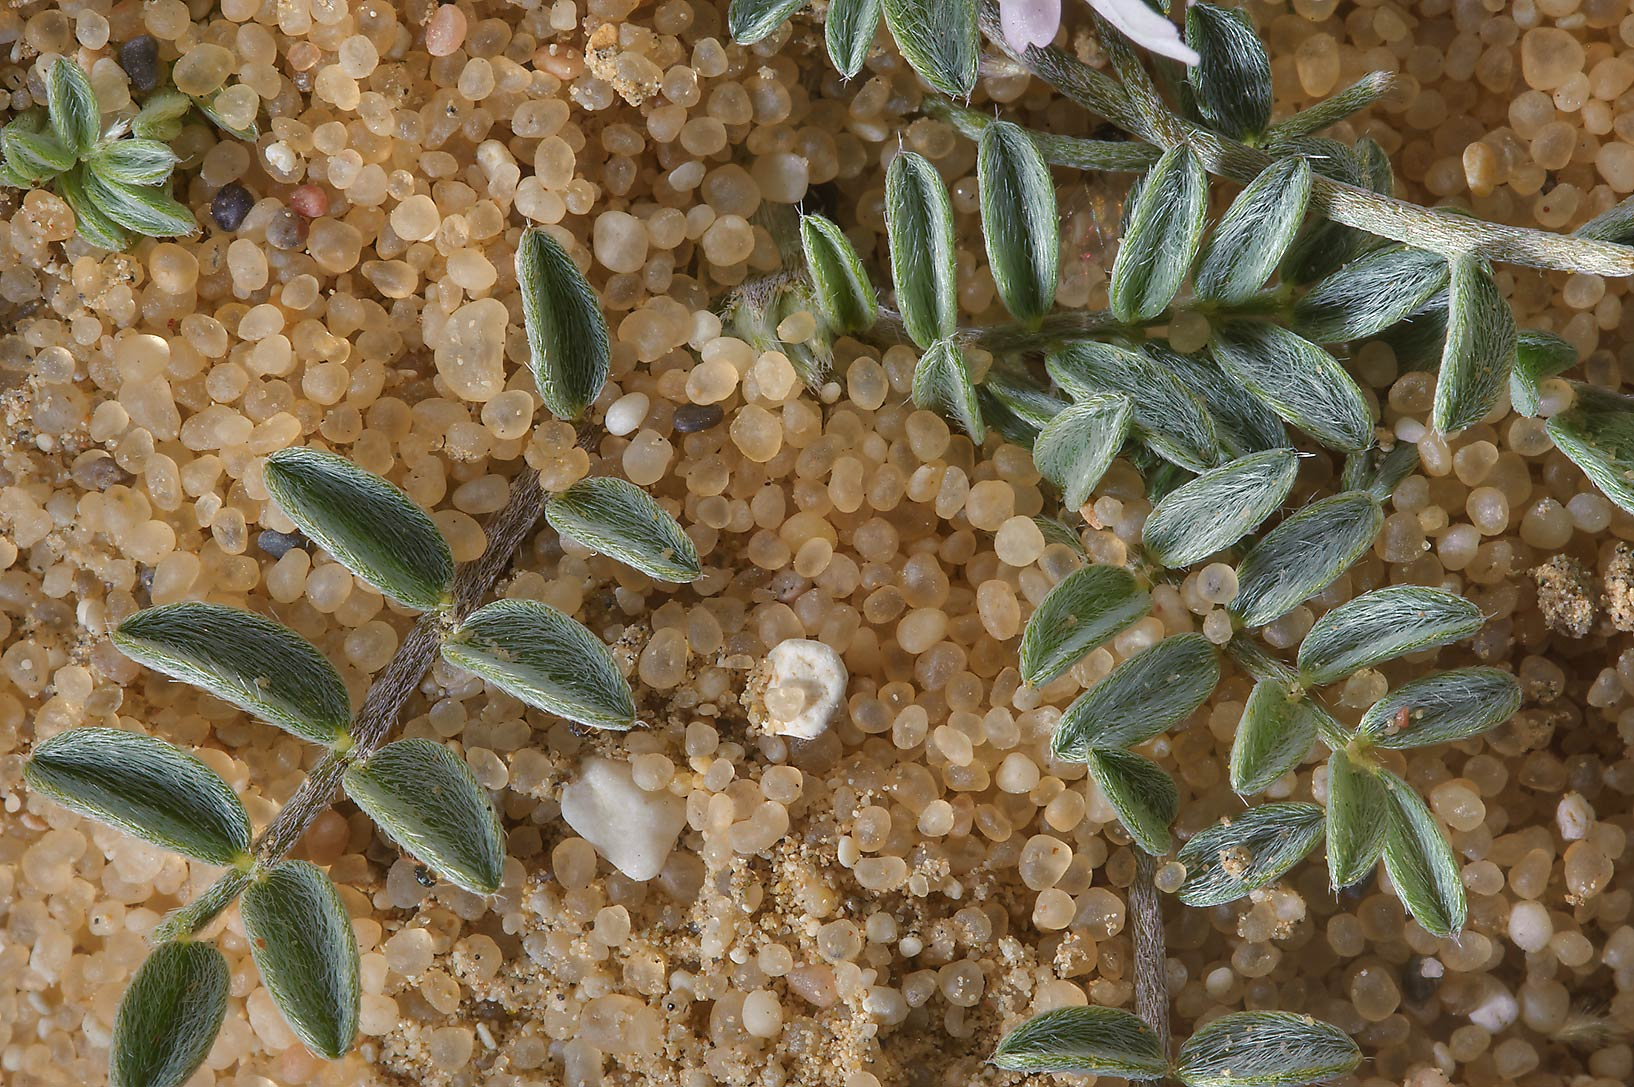 Leaves of milkvetch Astragalus schimperi in sands near Dukhan Rd.. Western Qatar